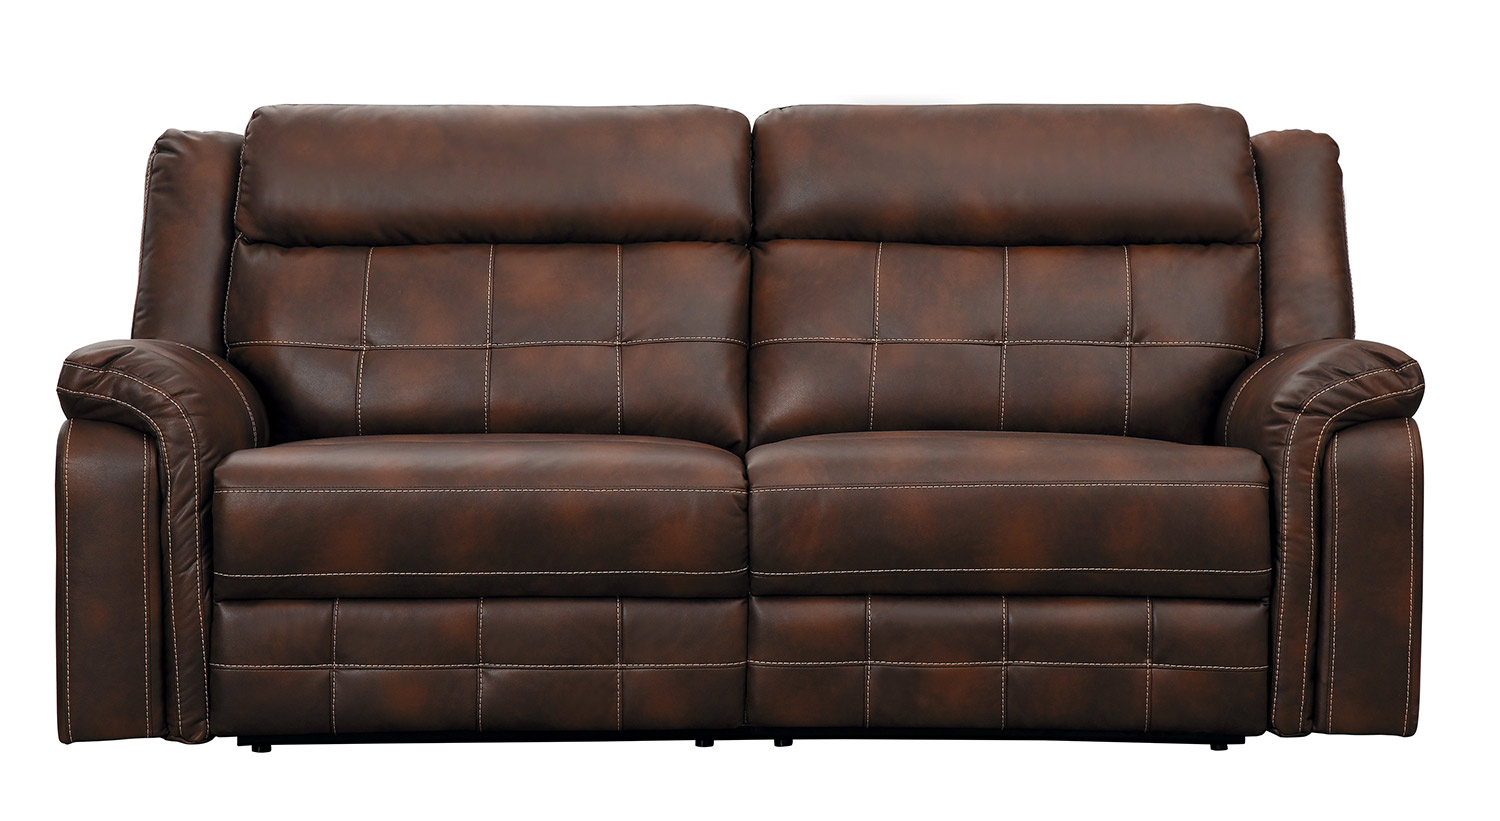 Homelegance Keridge Double Reclining Sofa - Brown